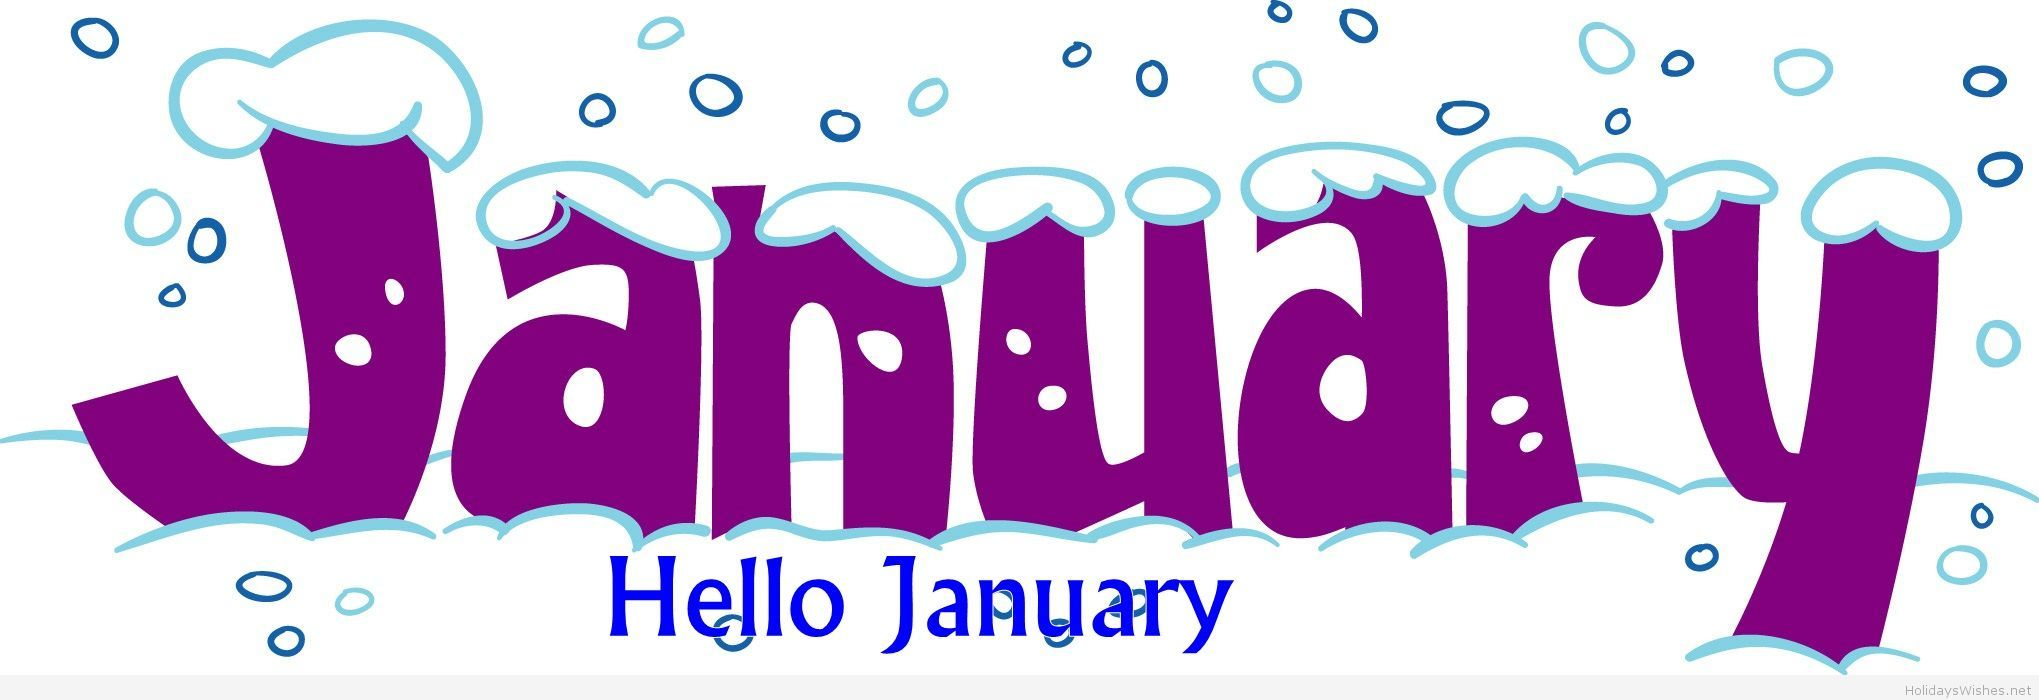 Month January clip art pictures photo